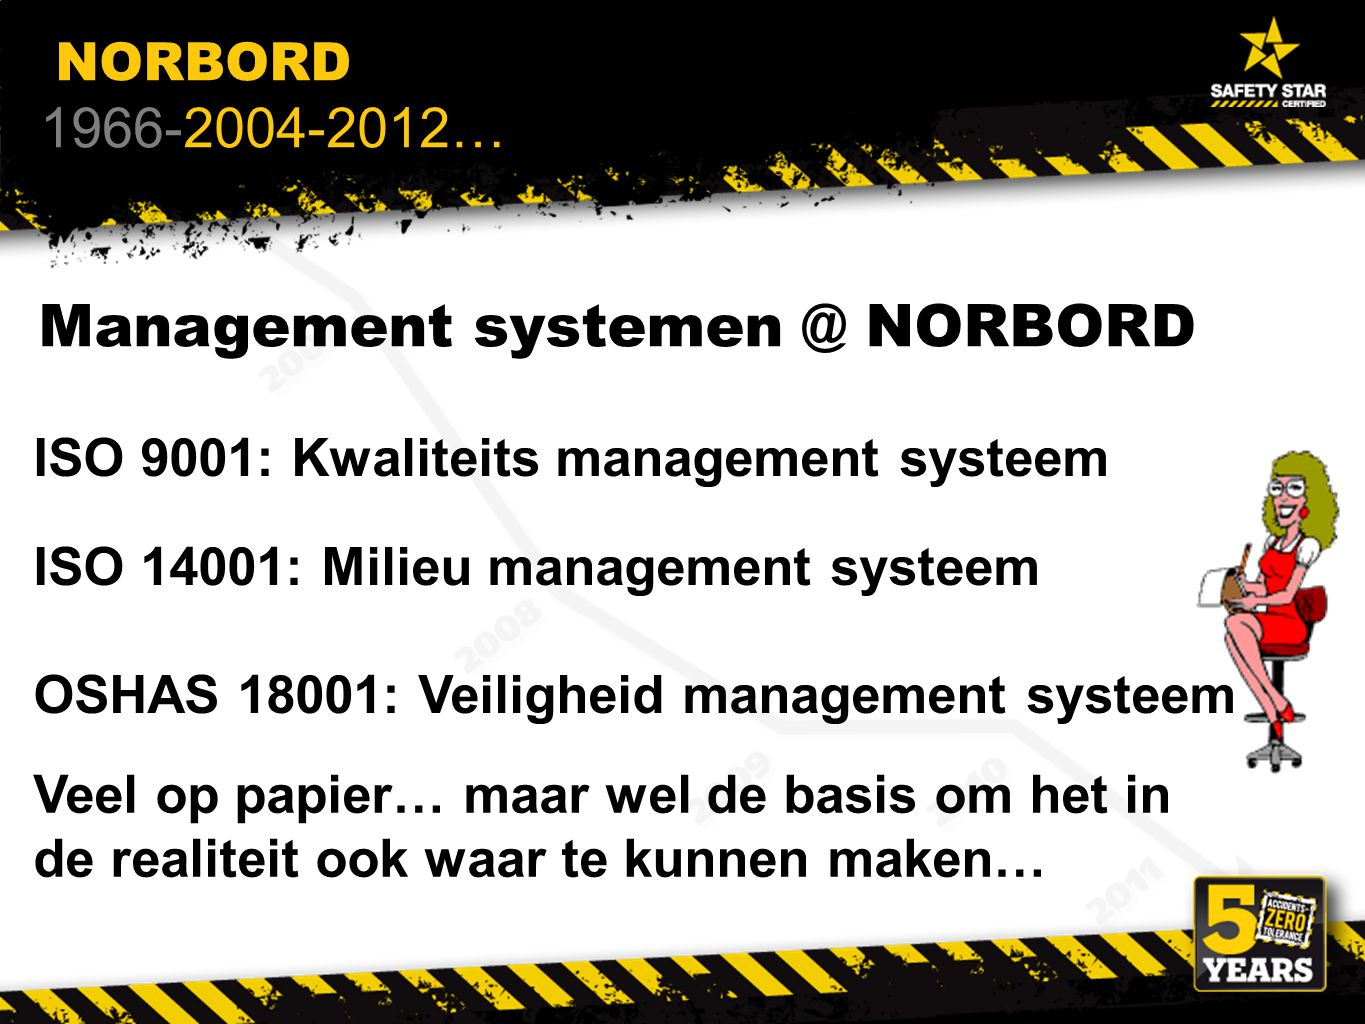 Management systemen @ NORBORD